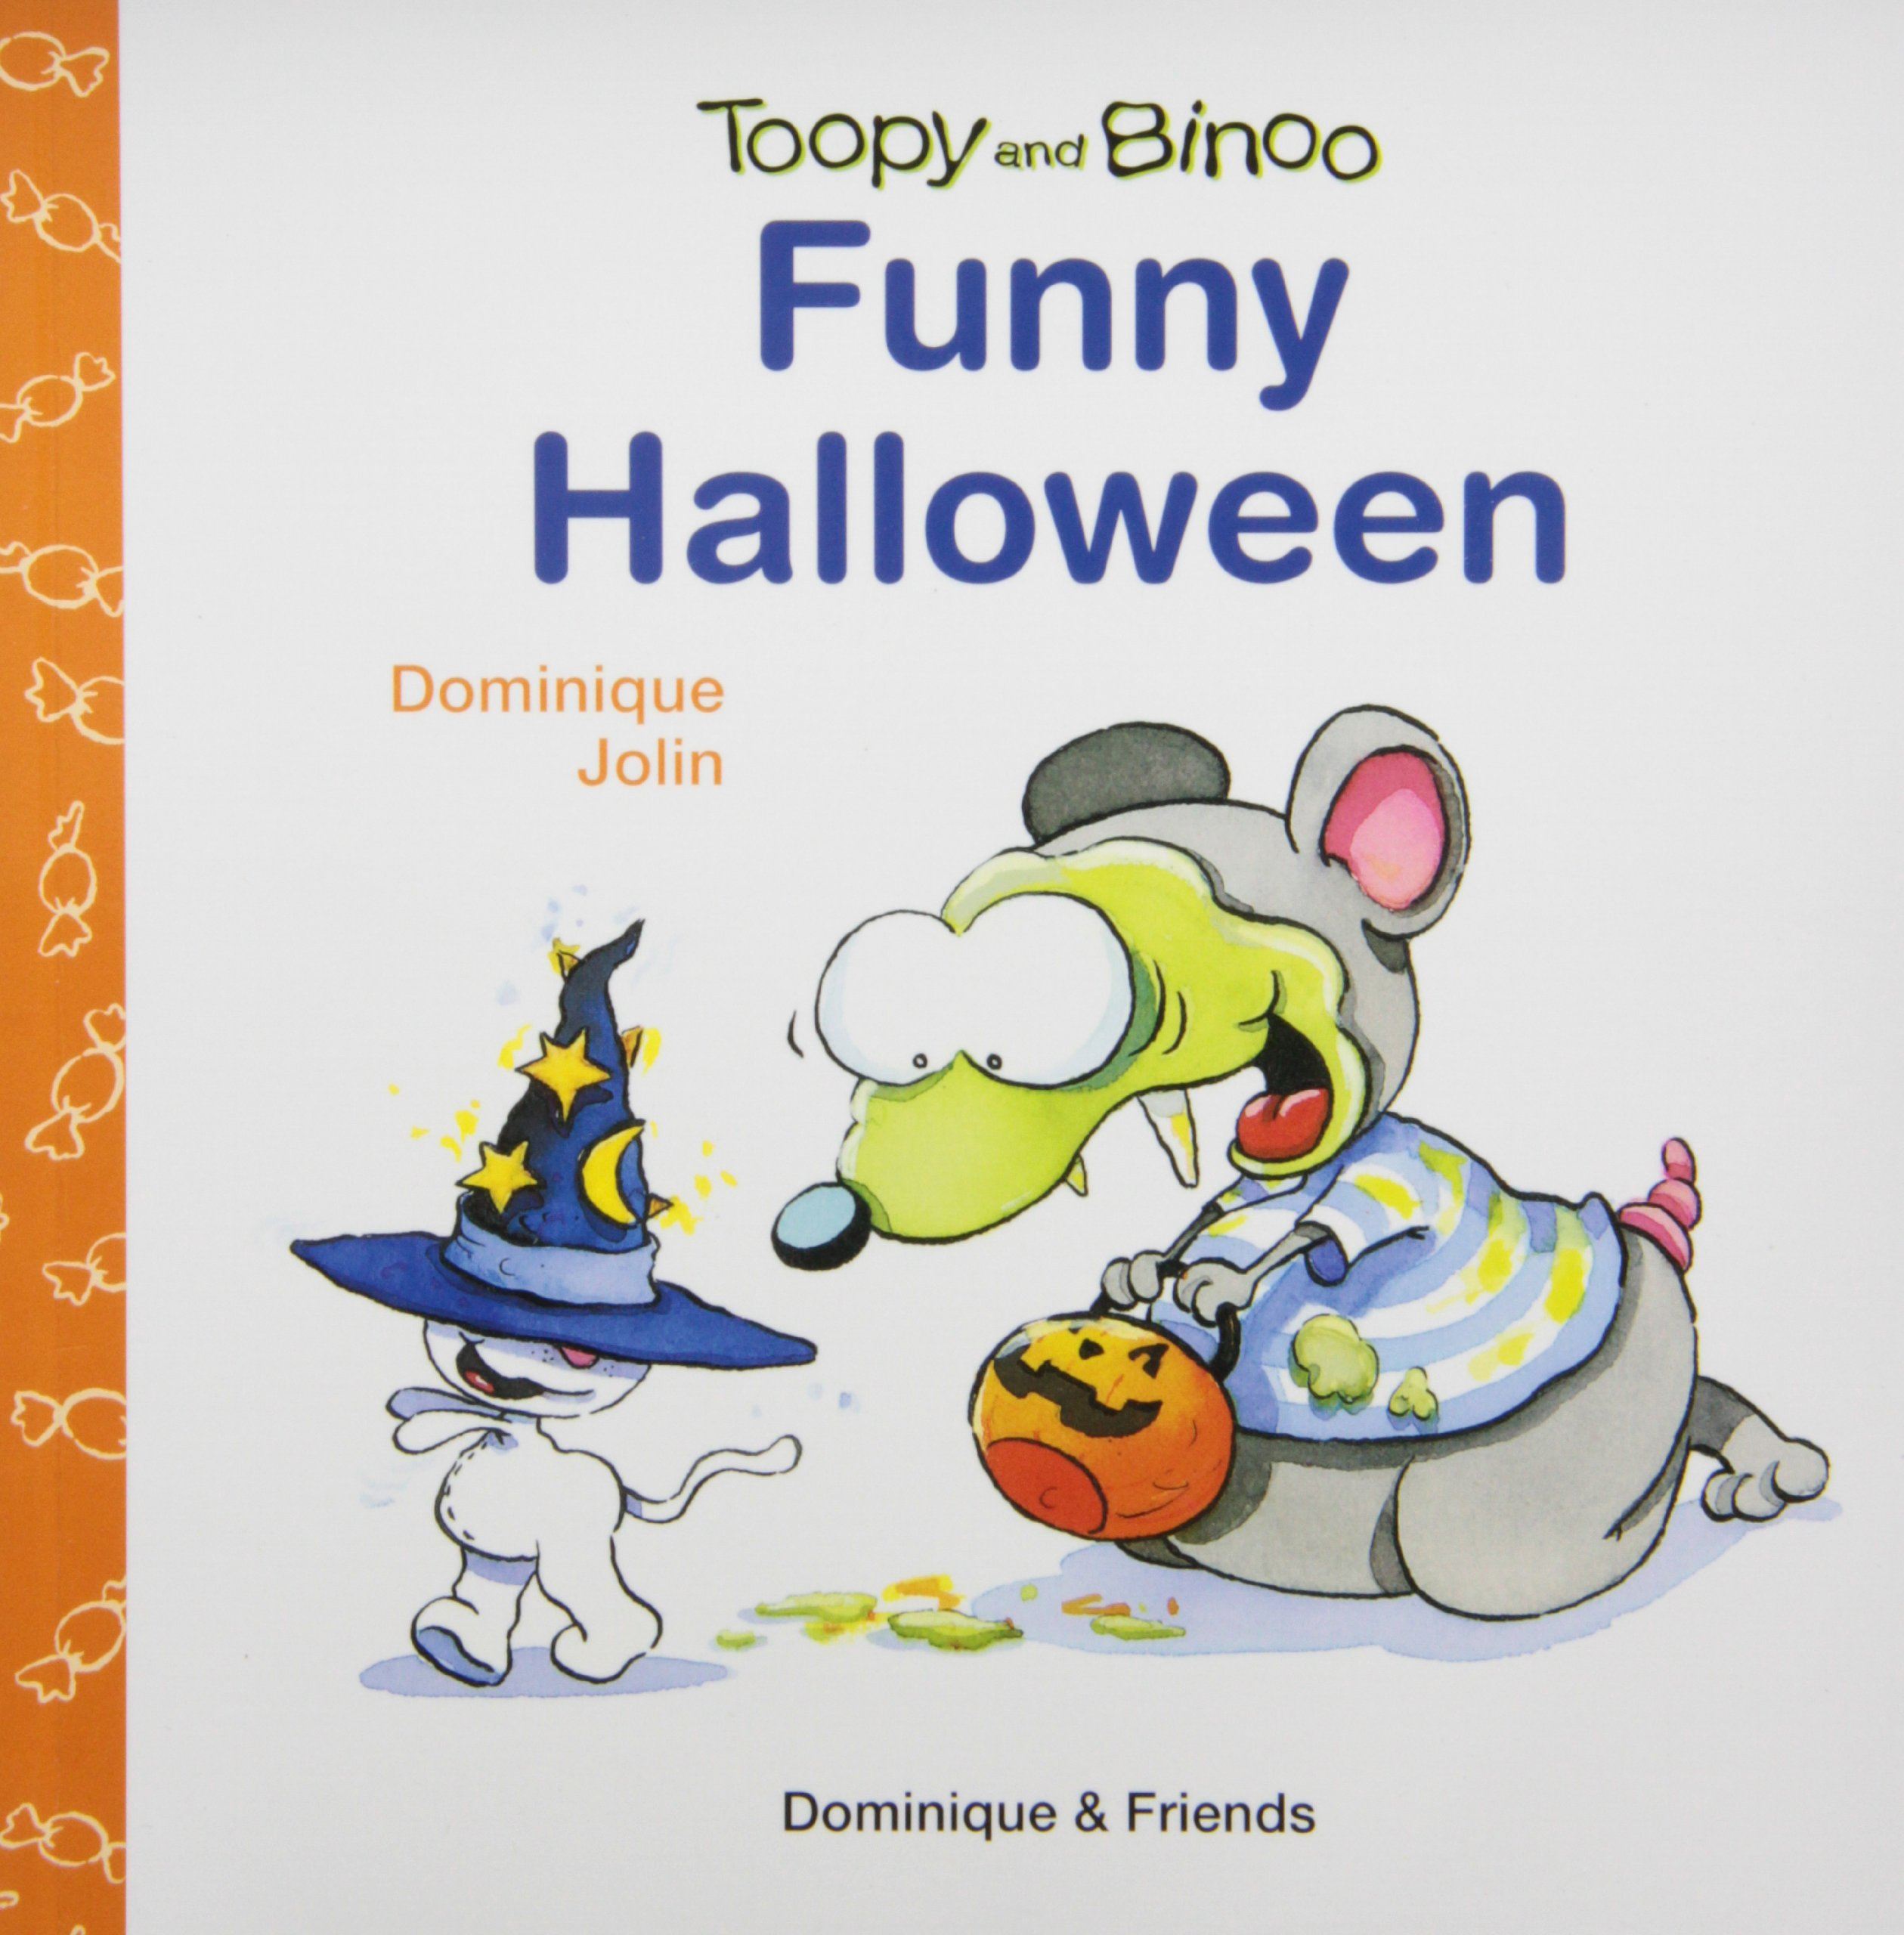 funny halloween toopy and binoo dominique jolin 9781553890133